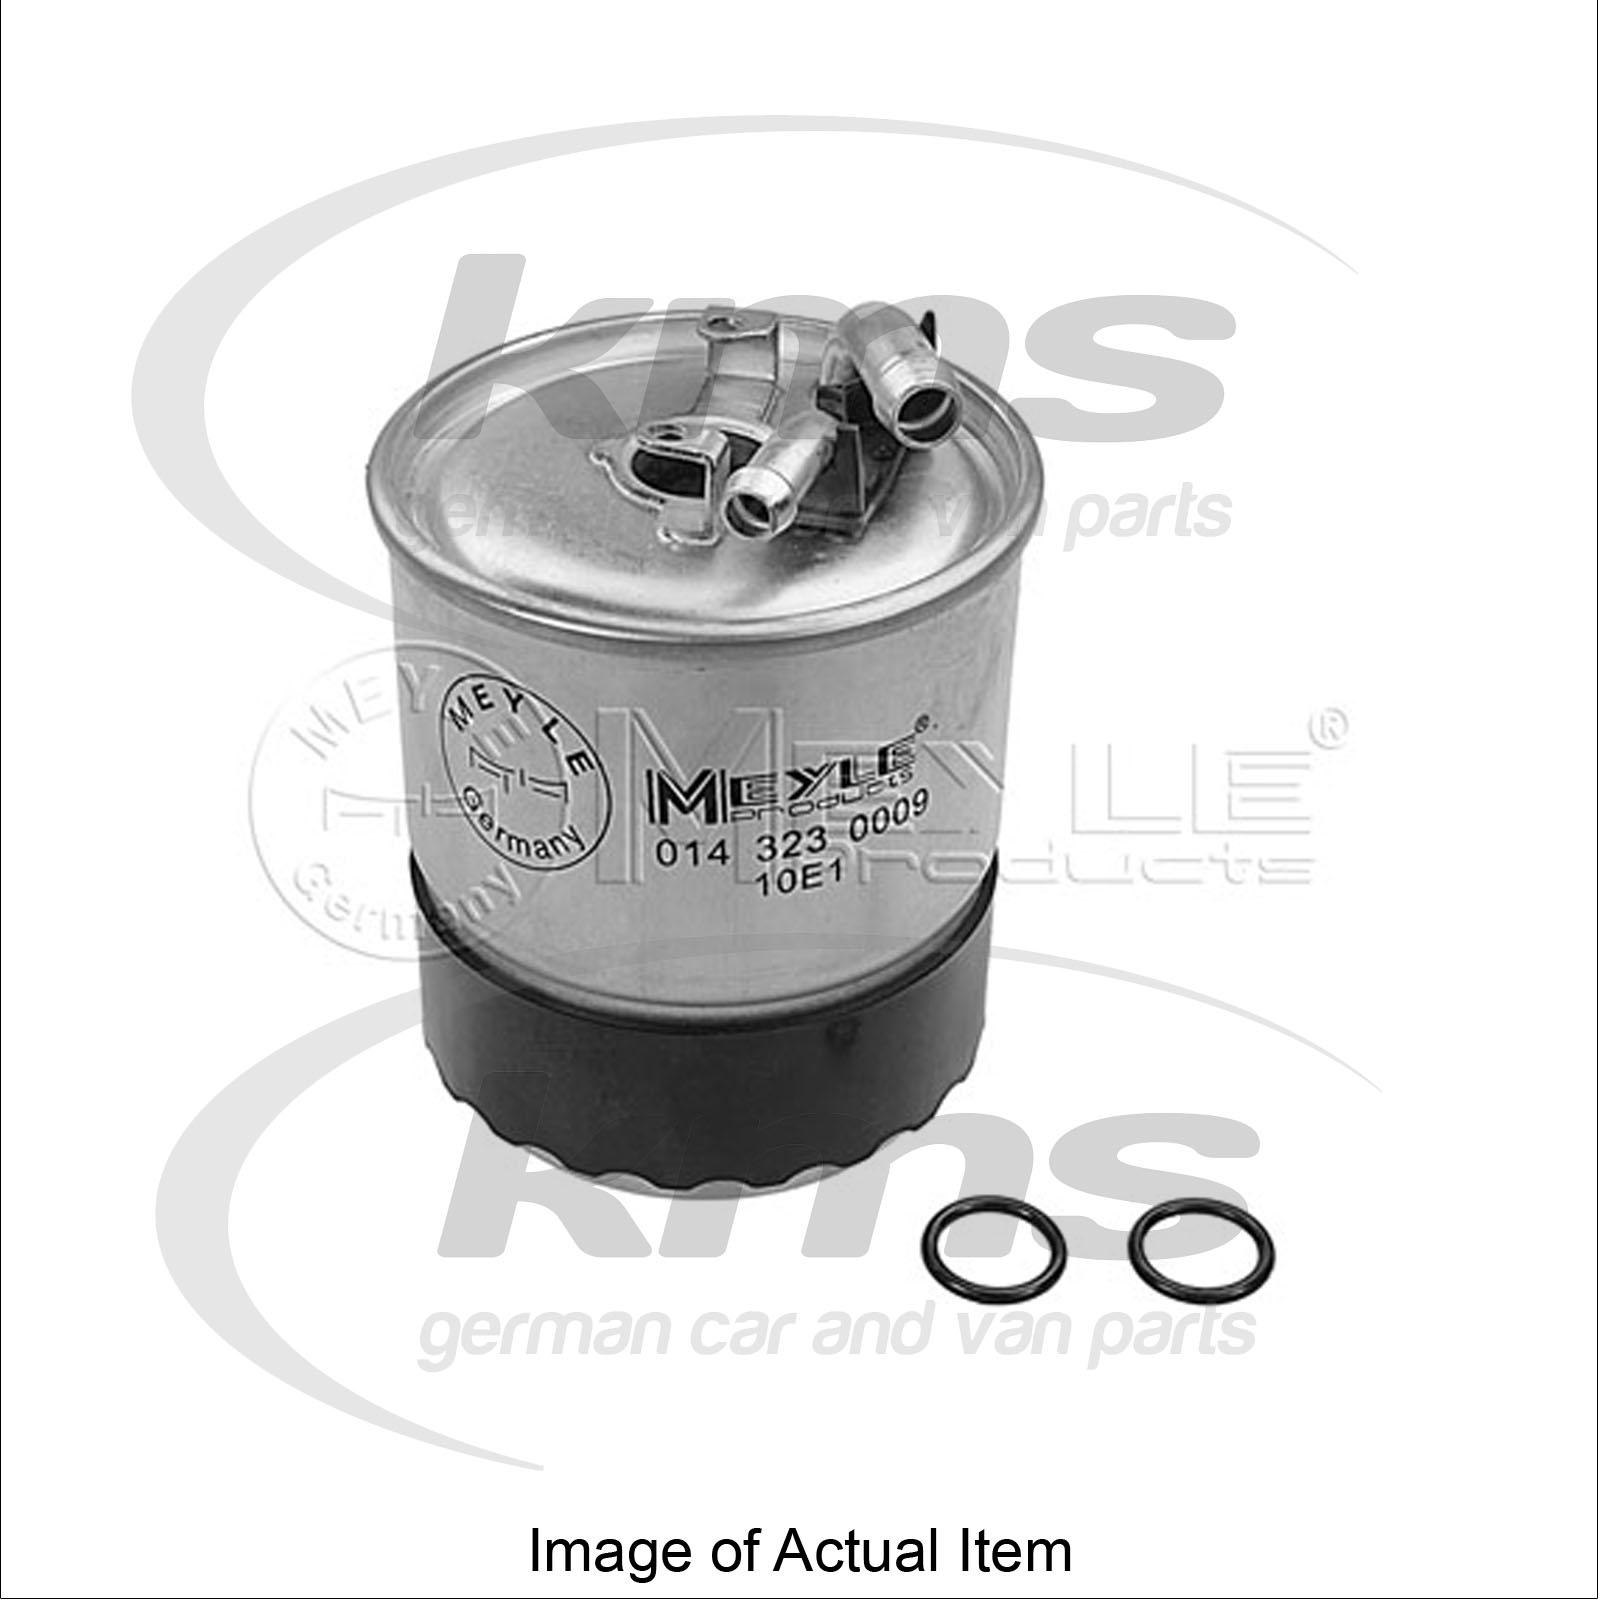 FUEL FILTER MERCEDES E-CLASS (W211) E 320 CDI (211.022